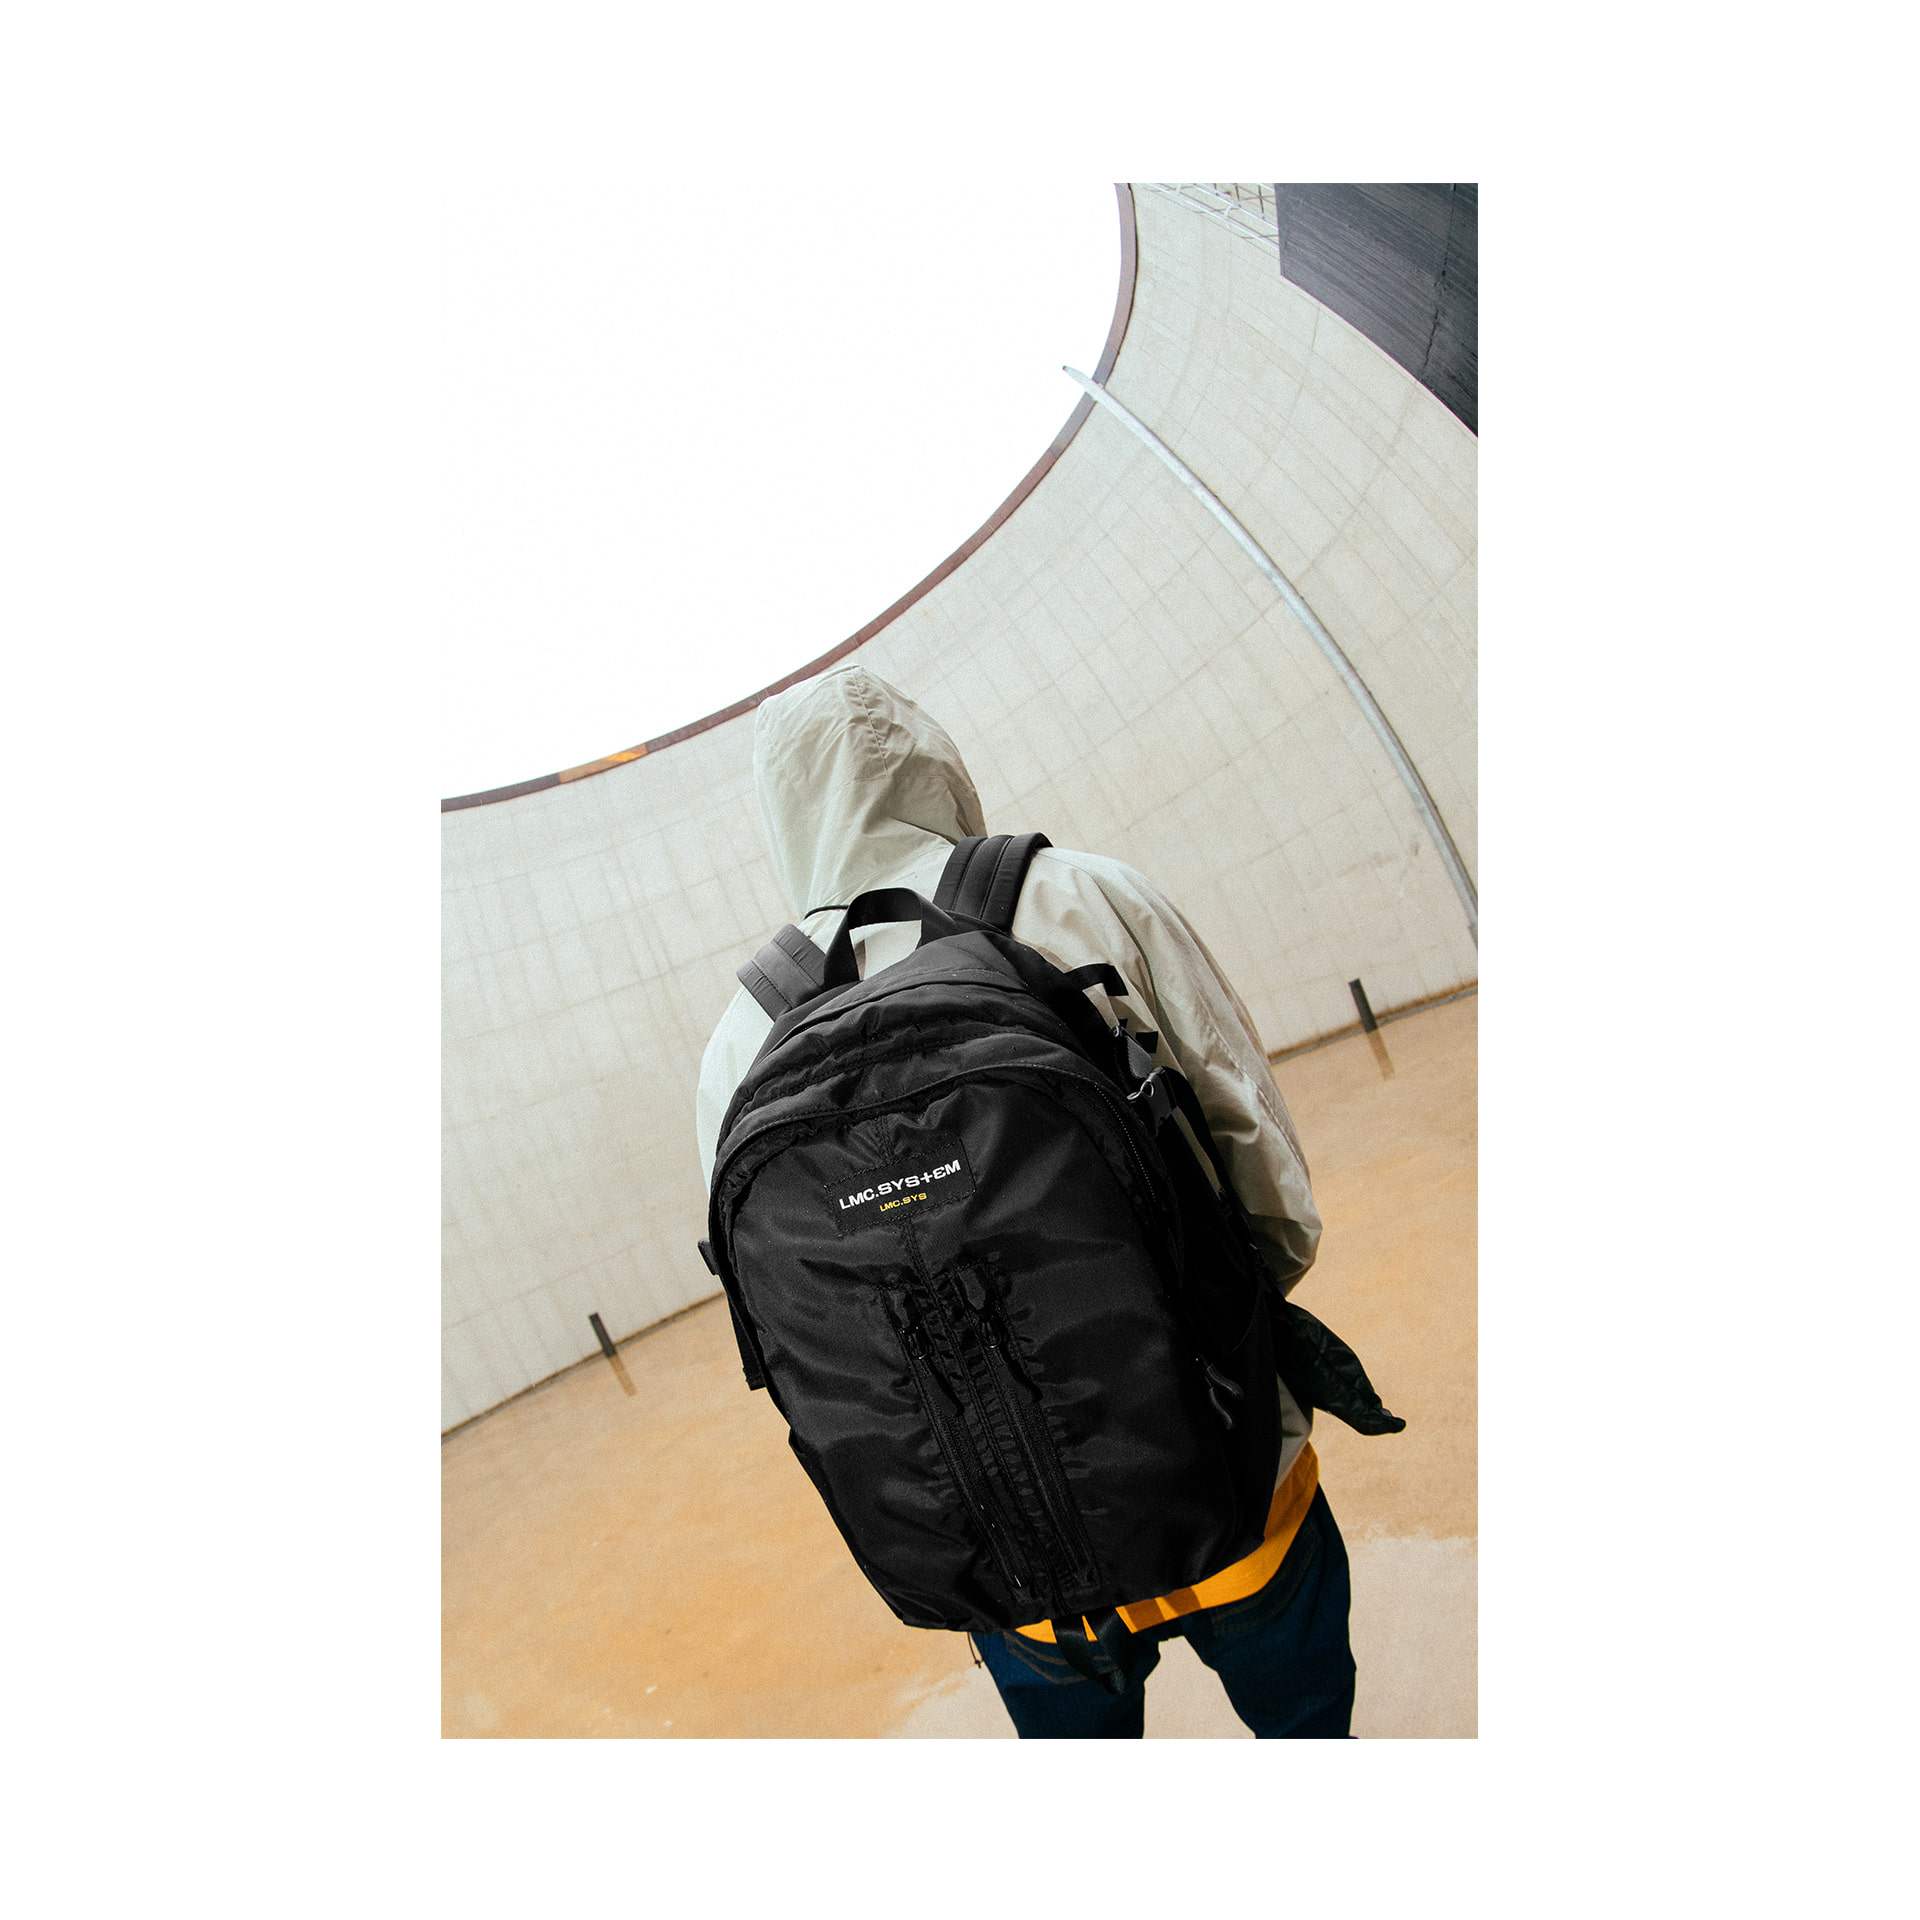 LMC SYSTEM SANTA MONICA BACKPACK black